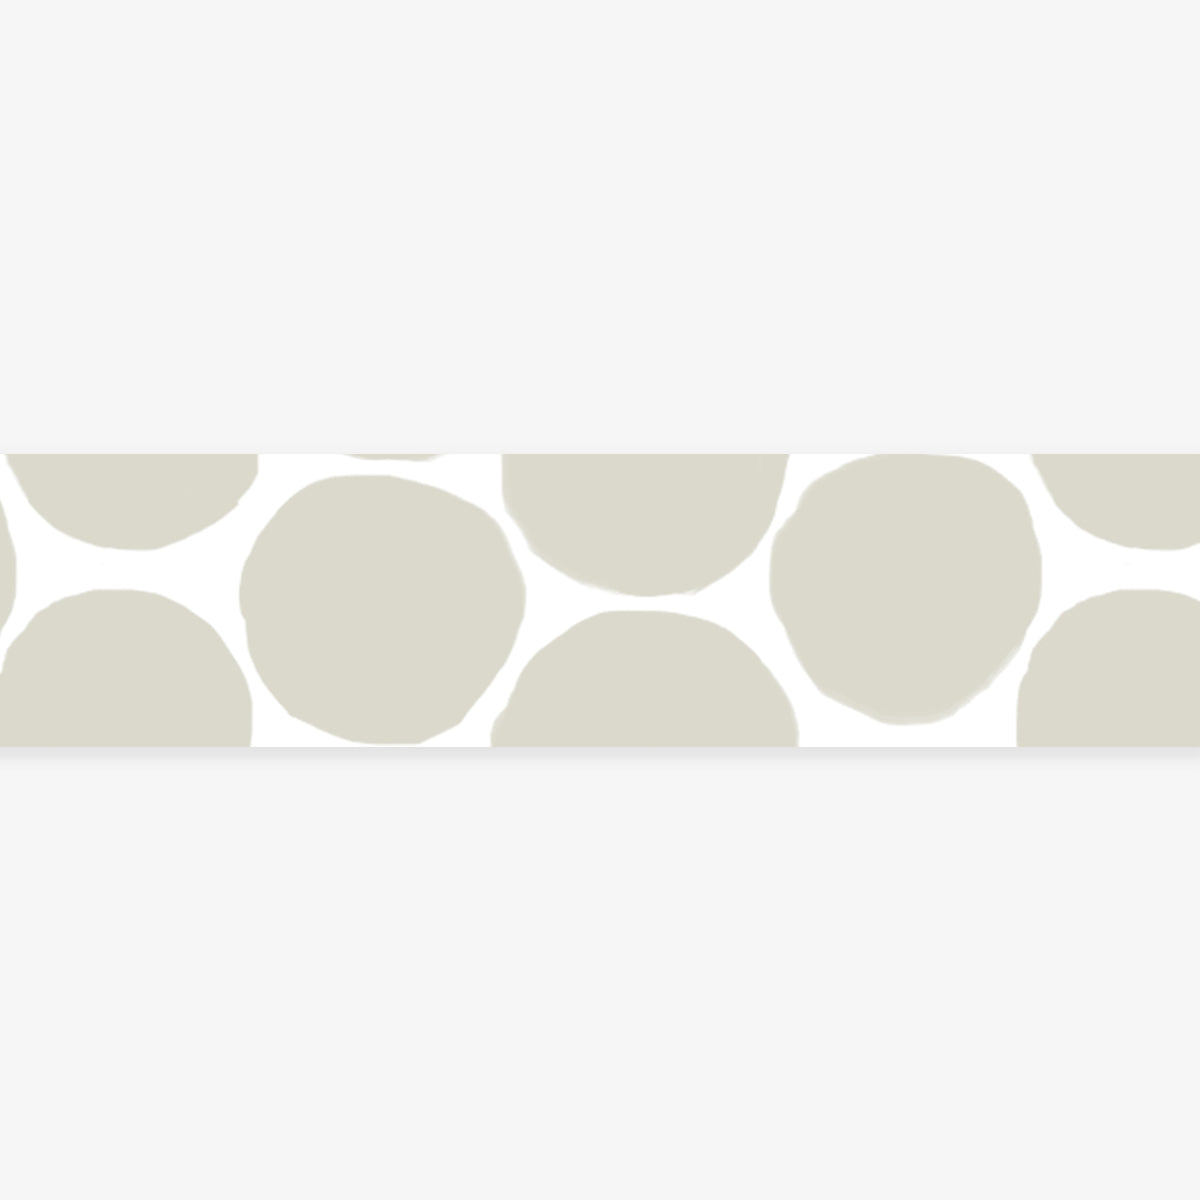 MASTÉ MASKING TAPE // WARM GREY COIN DOTS